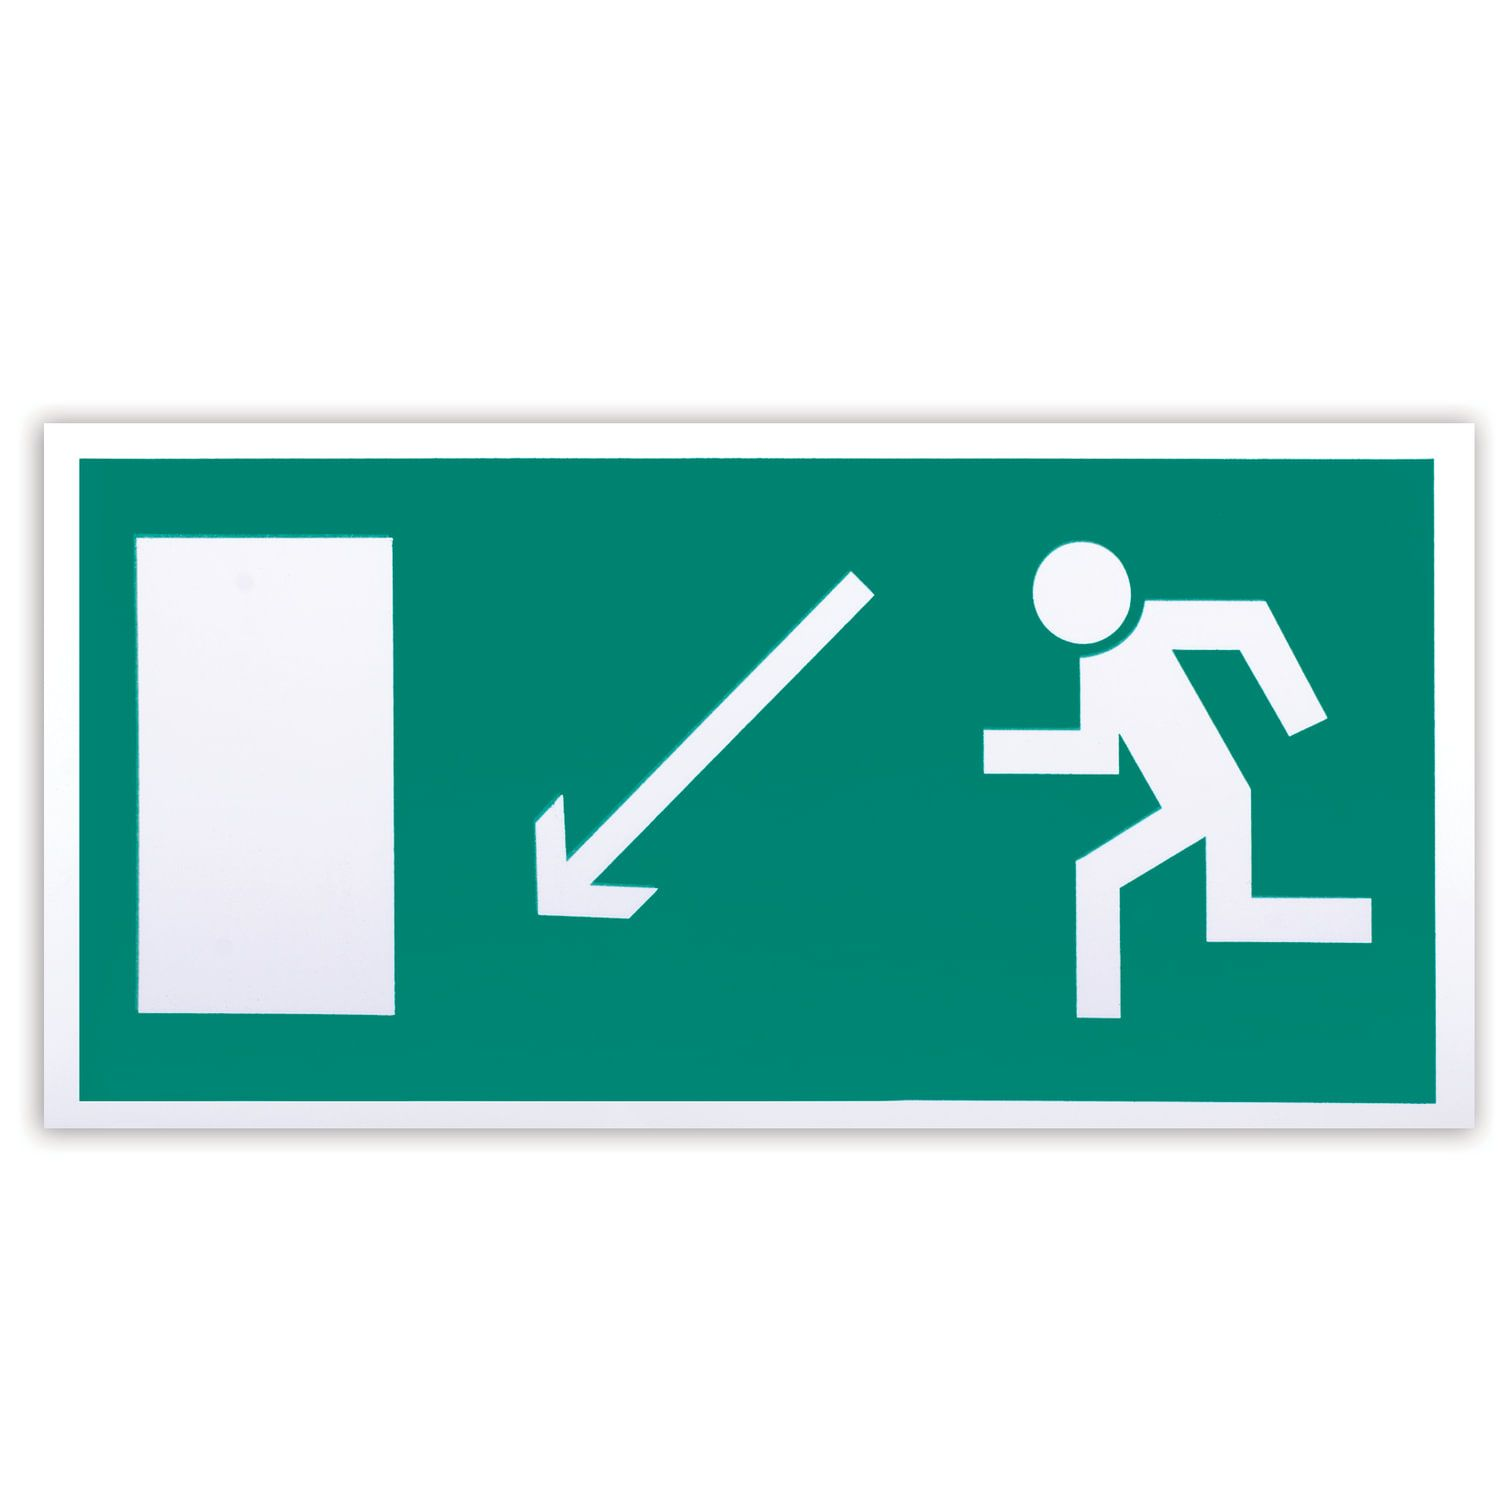 """Evacuation sign """"Direction to the evacuation exit to the left downwards"""", 300x150 mm, self-adhesive, photoluminescent"""